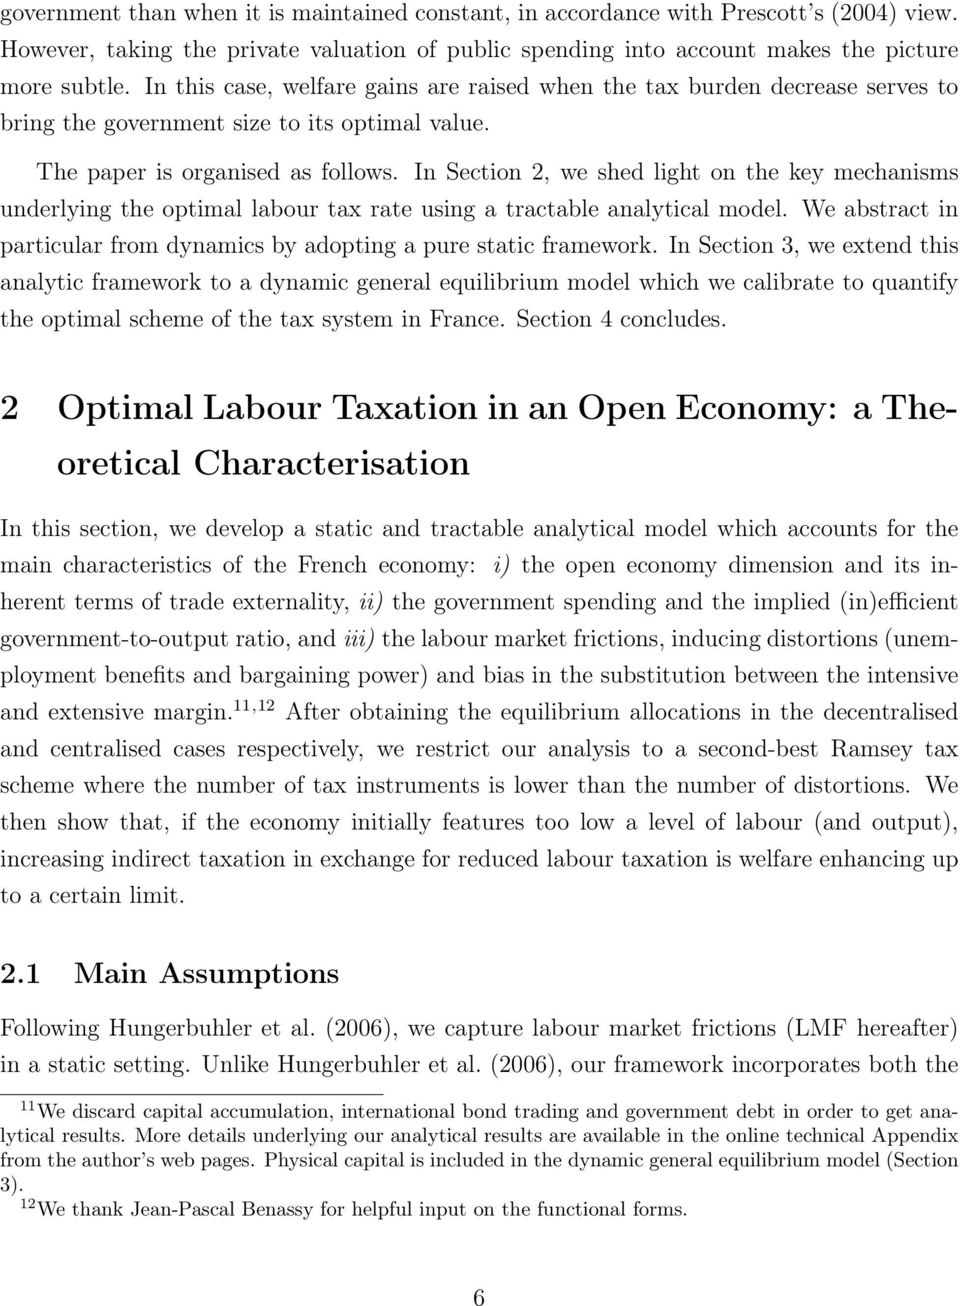 In Section 2, we shed light on the key mechanisms underlying the optimal labour tax rate using a tractable analytical model.